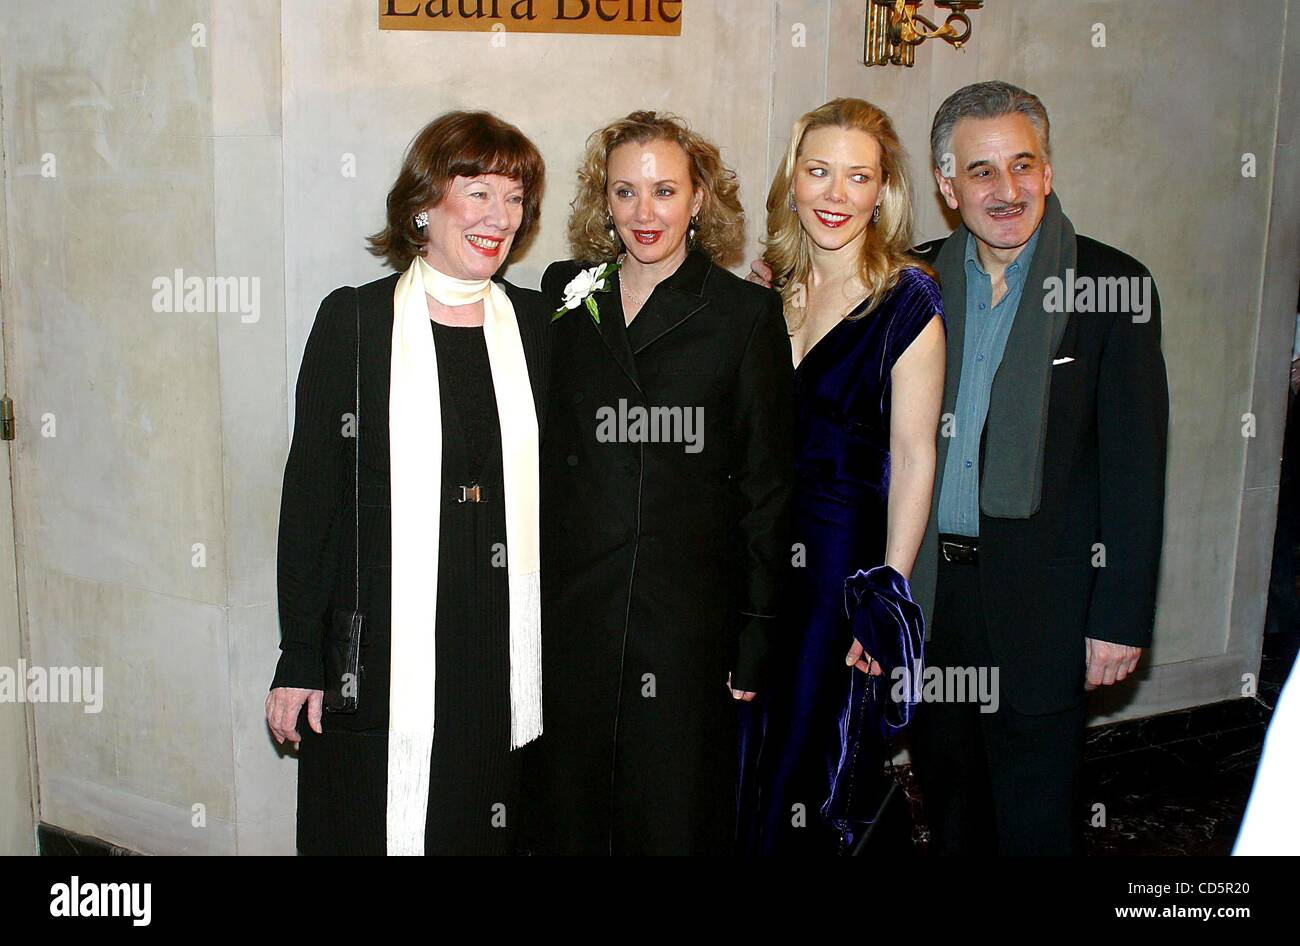 Jan. 9, 2003 - New York, New York, U.S. - K28485RM.'TARTUFFE' PLAY OPENING AT AMERICAN AIRLINES THEATRE - Stock Image